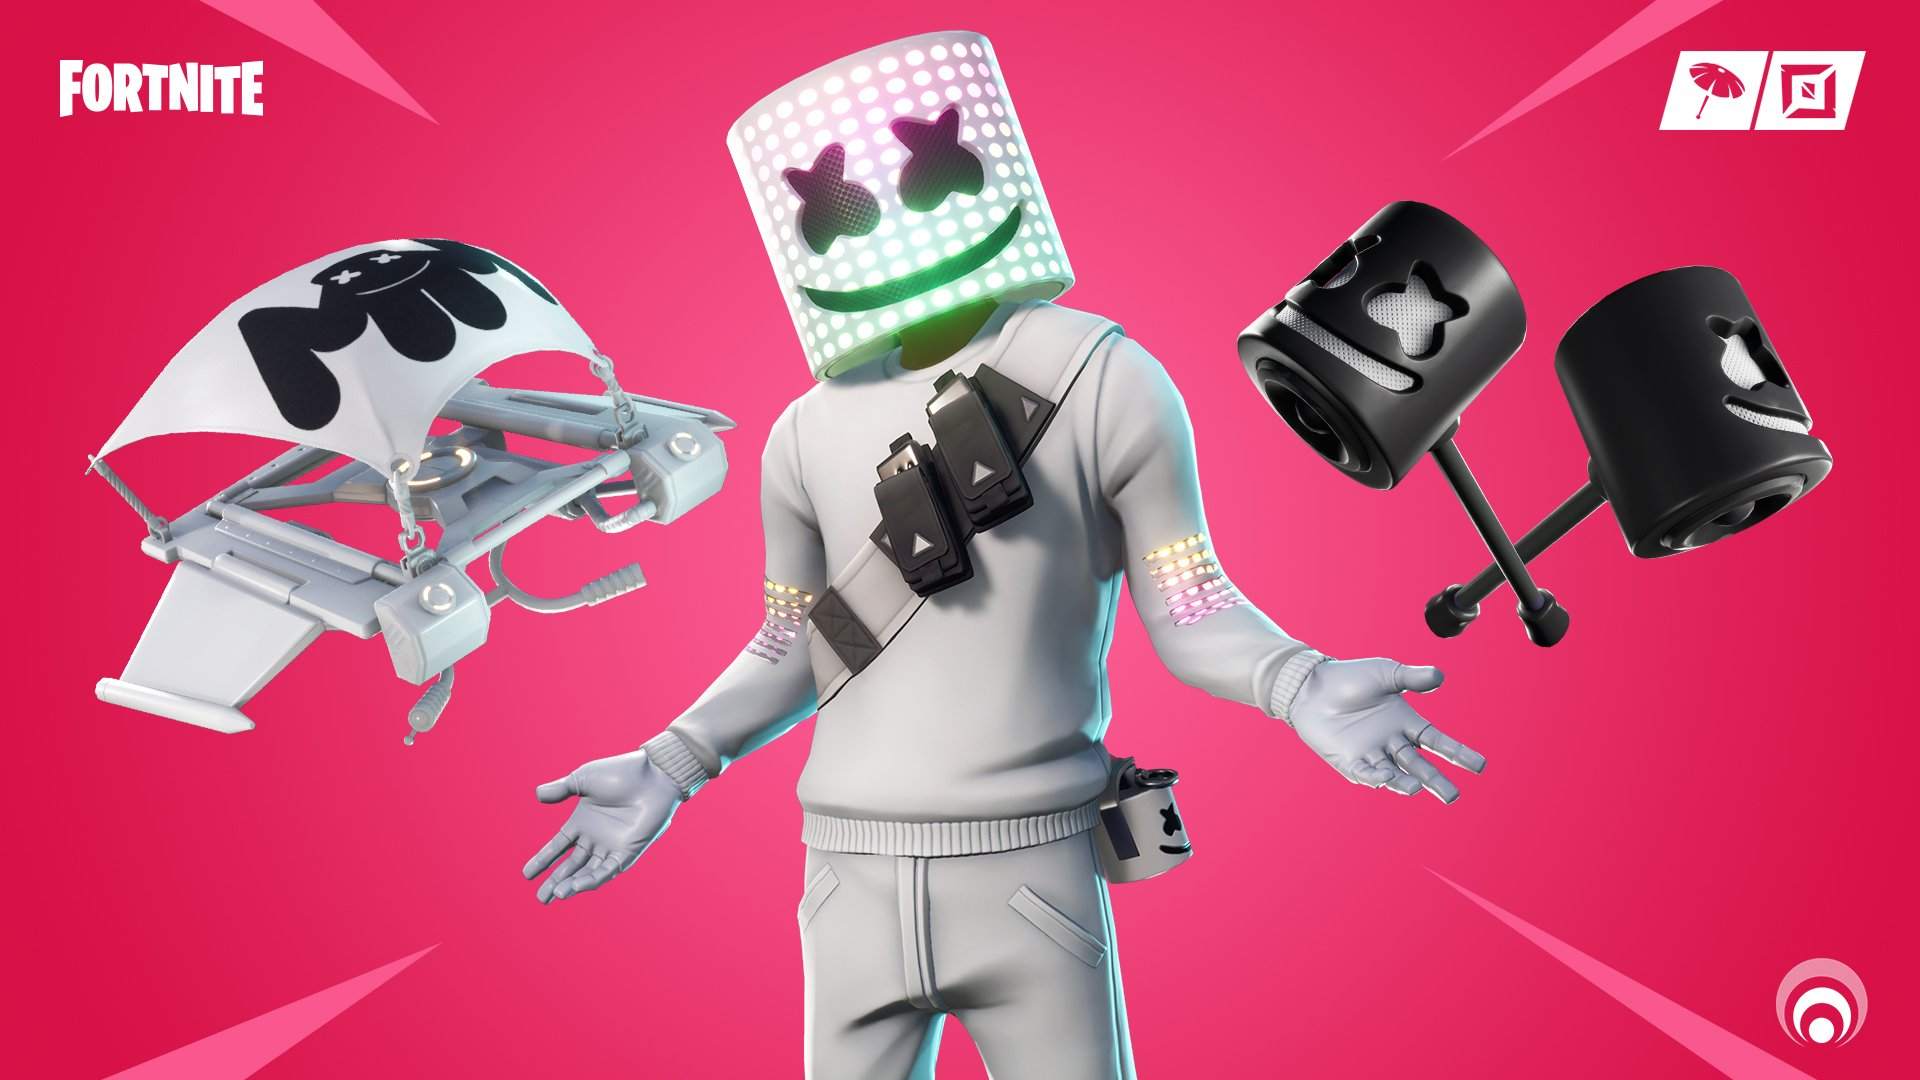 Fortnite Marshmello Skin with new Mello Mallets pickaxe